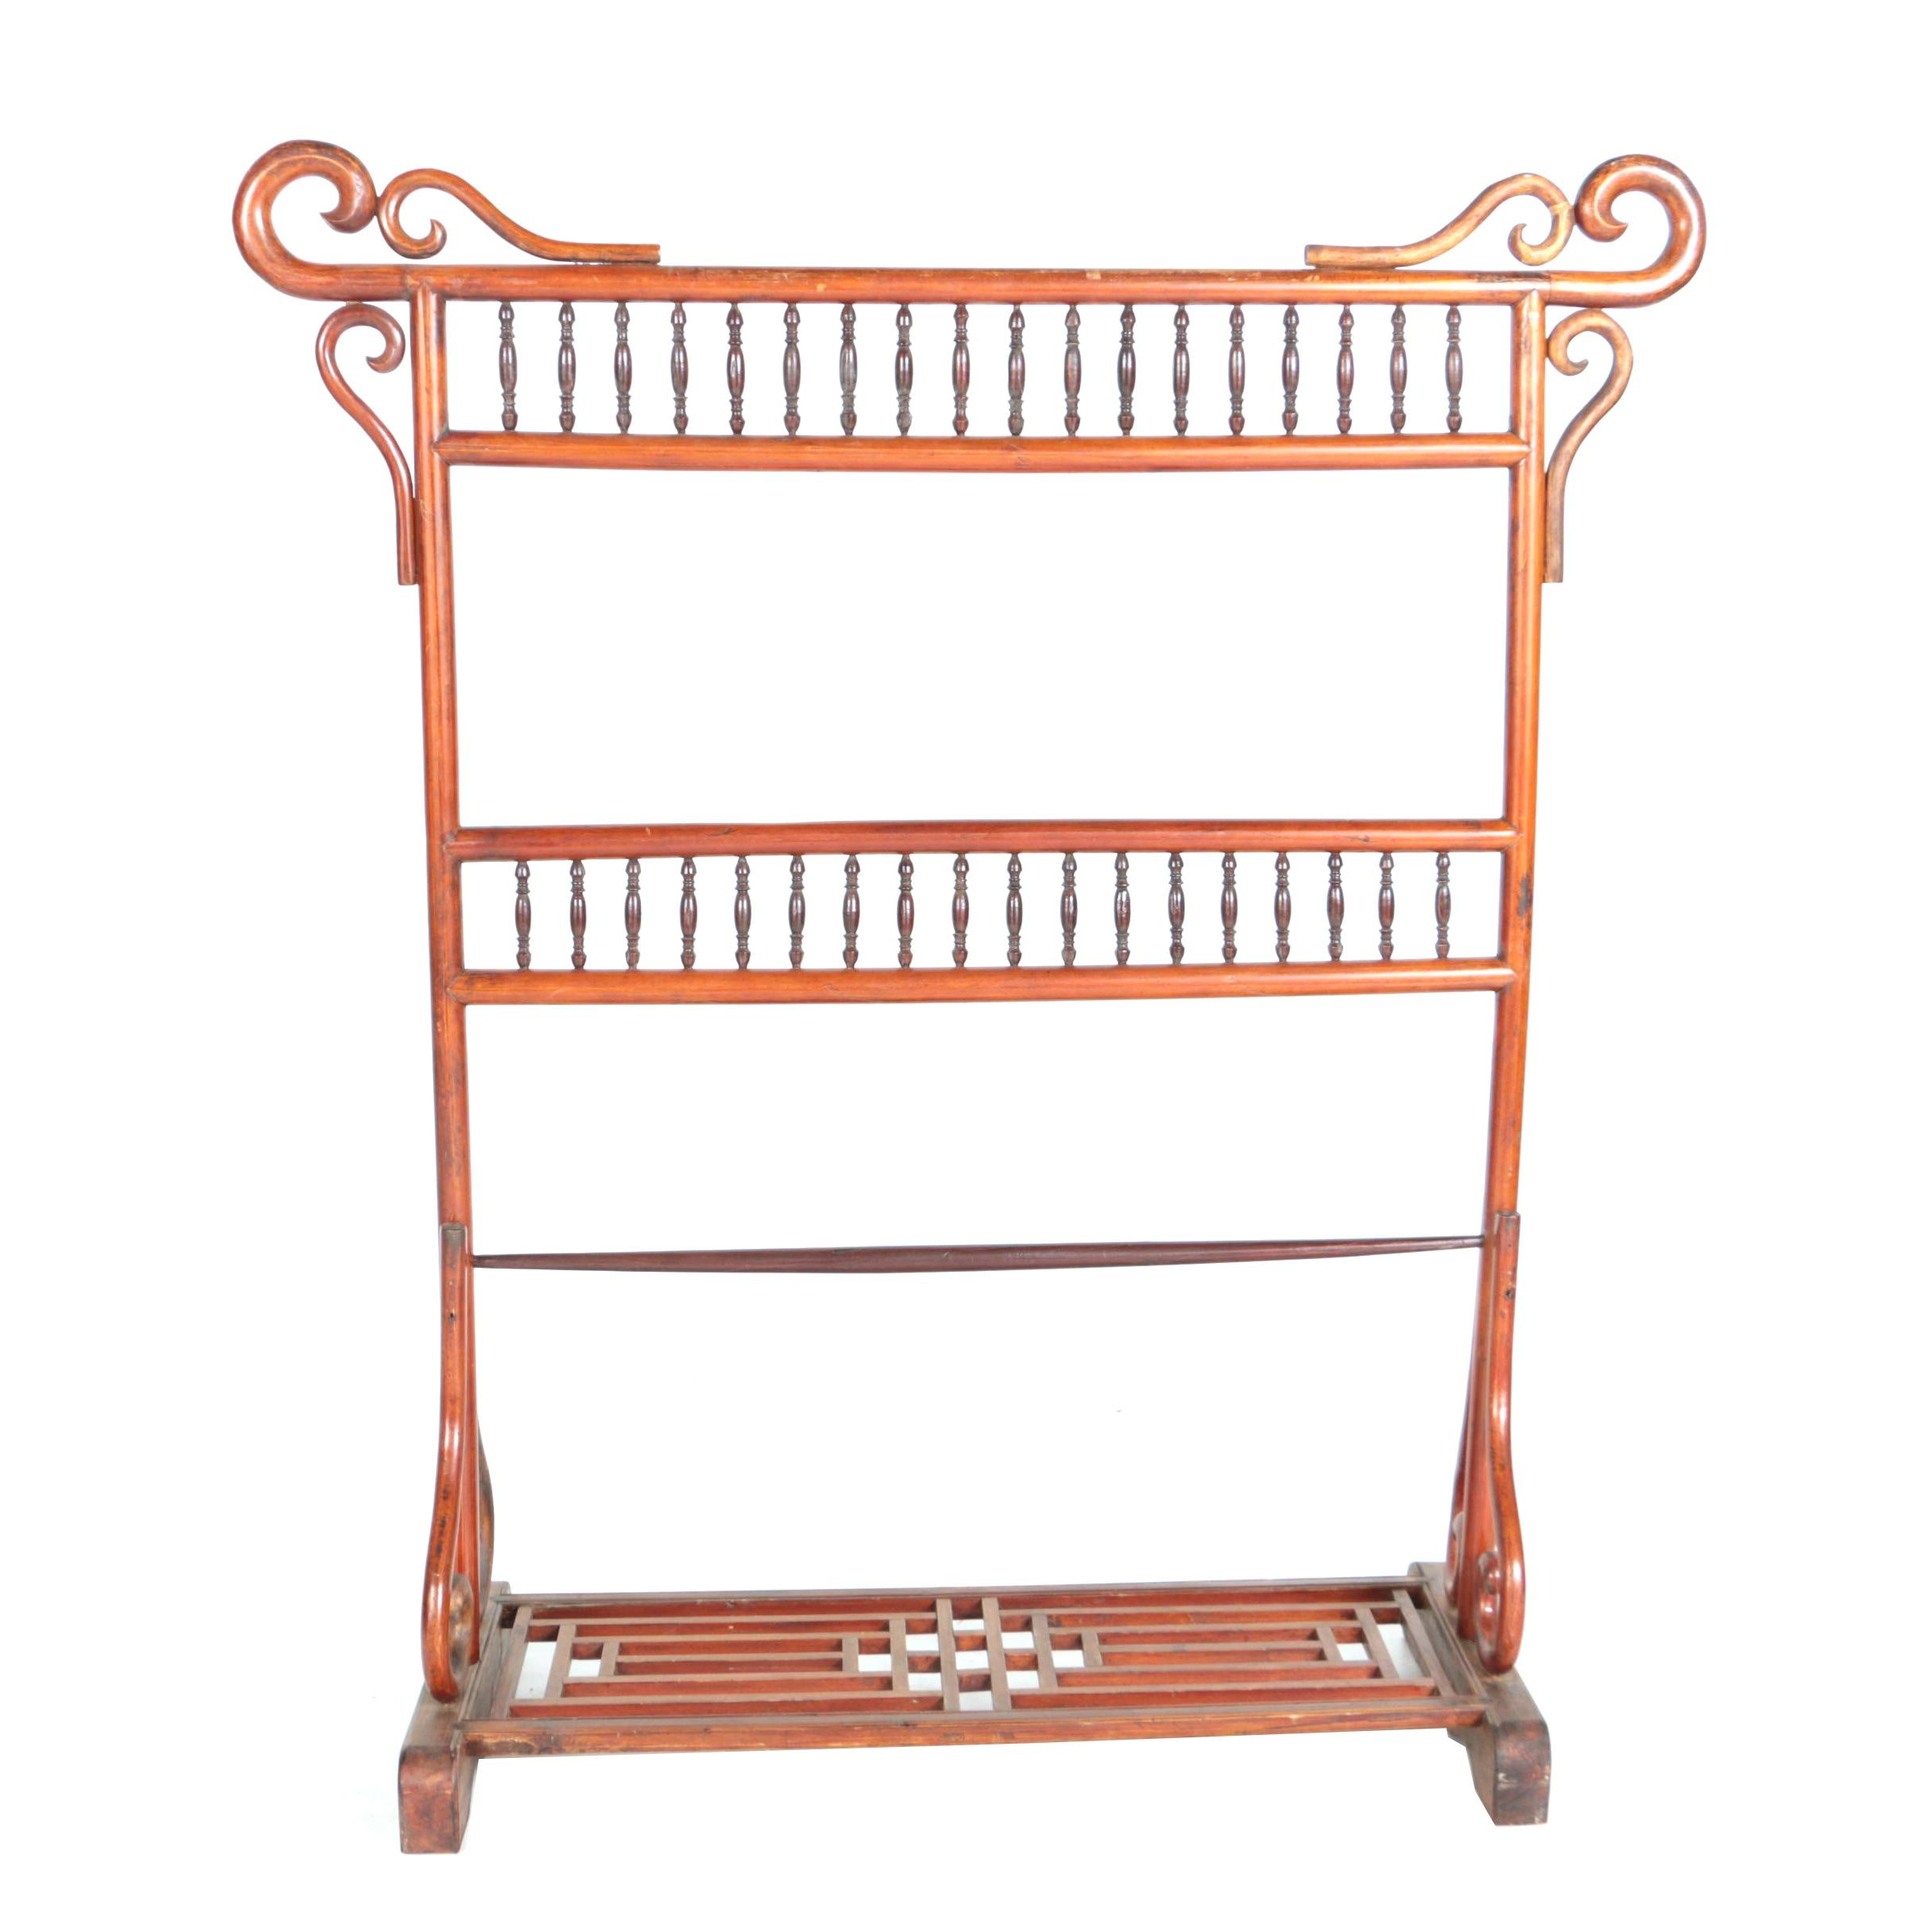 Qing Dynasty Hardwood Clothes Rack, Late 19th/Early 20th Century